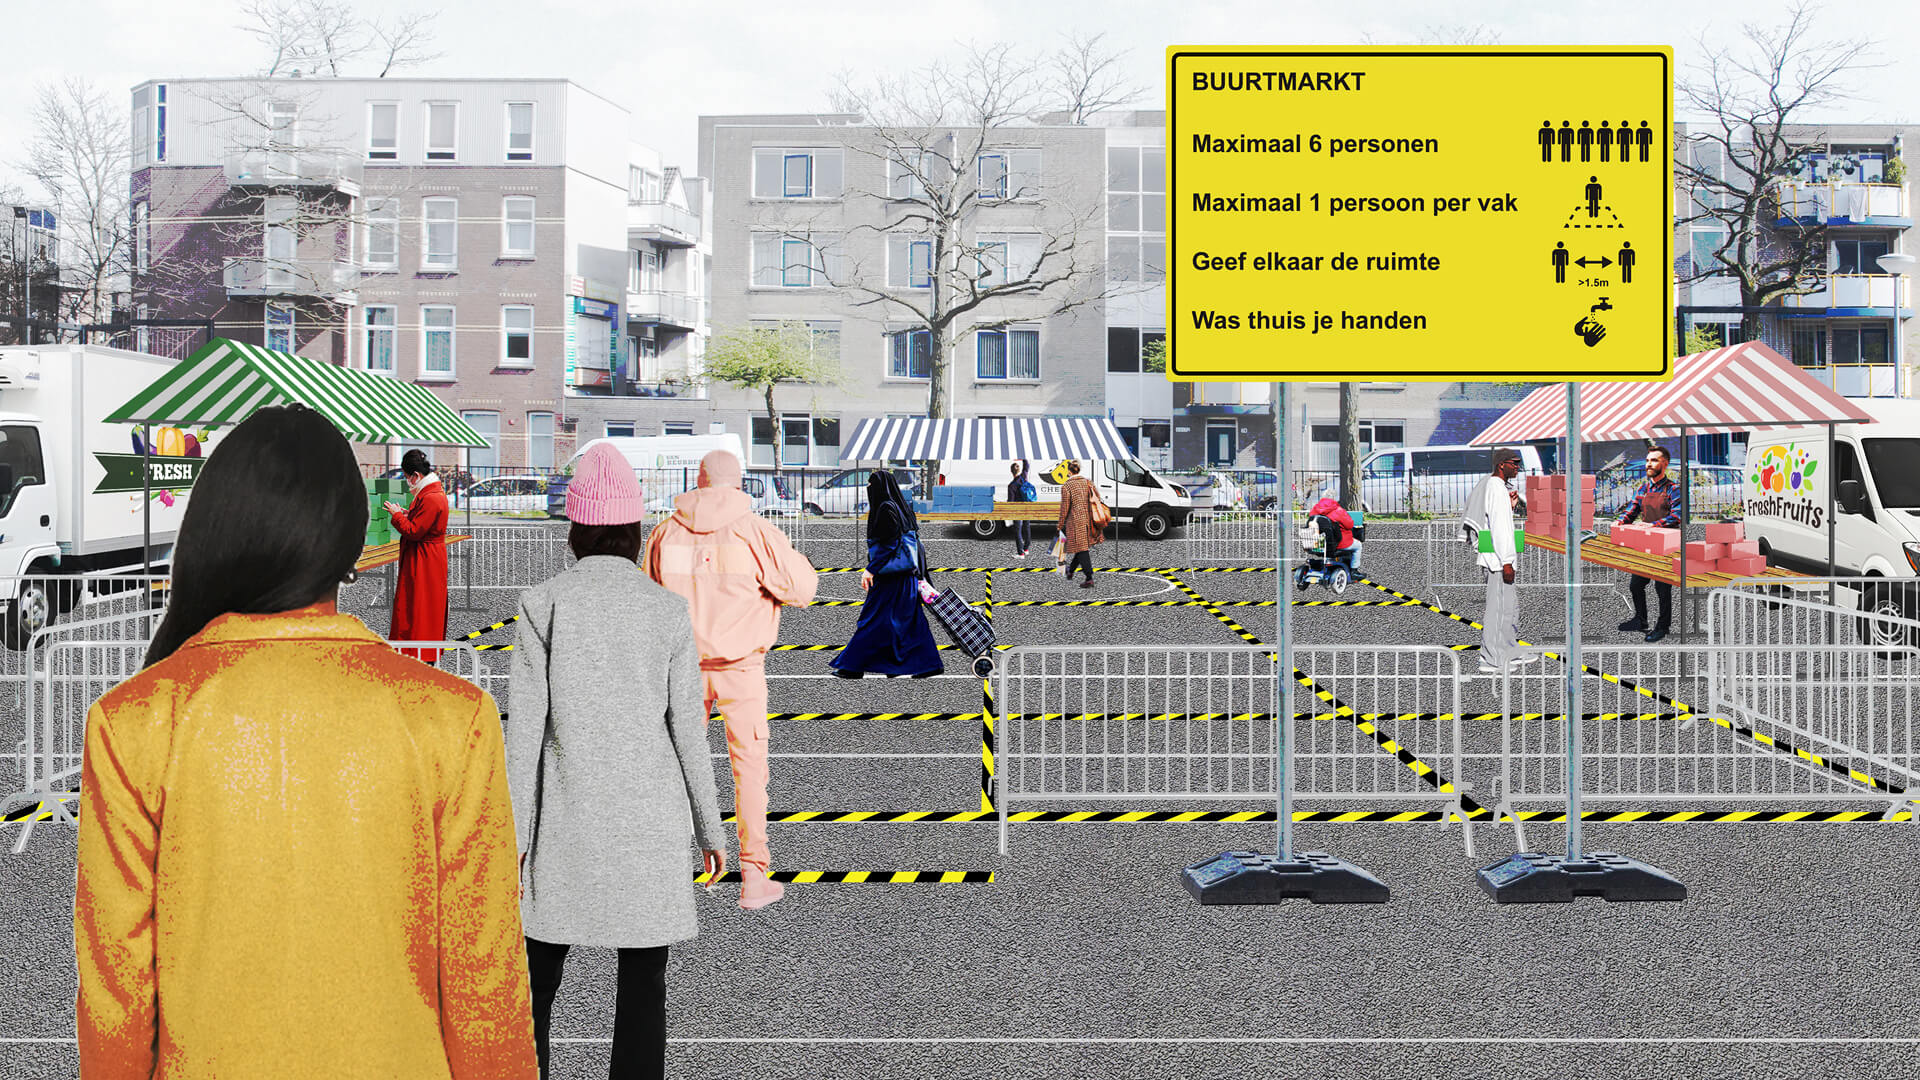 A representation of the proposed micro-market with rules displayed at the entrance | Hyperlocal micro-markets in shutdown realities | Shift architecture urbanism | STIRworld